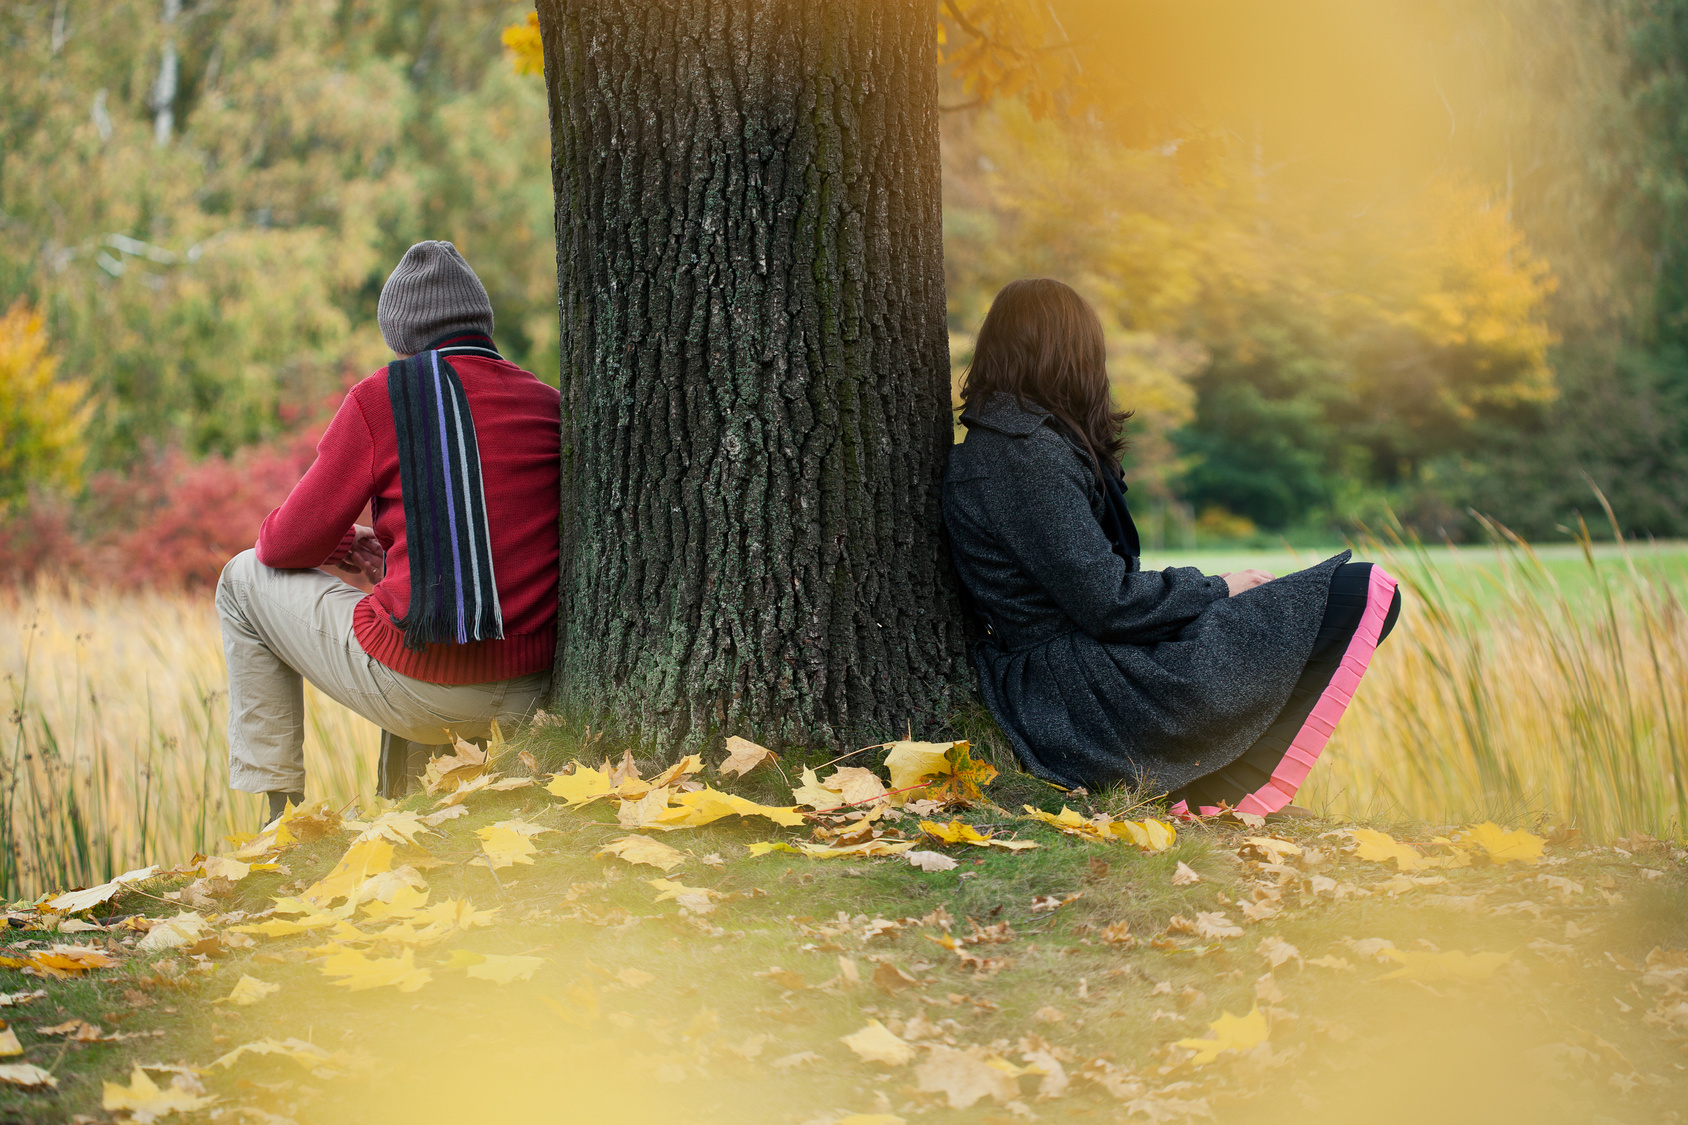 Man and woman contemplationg in the autumn park